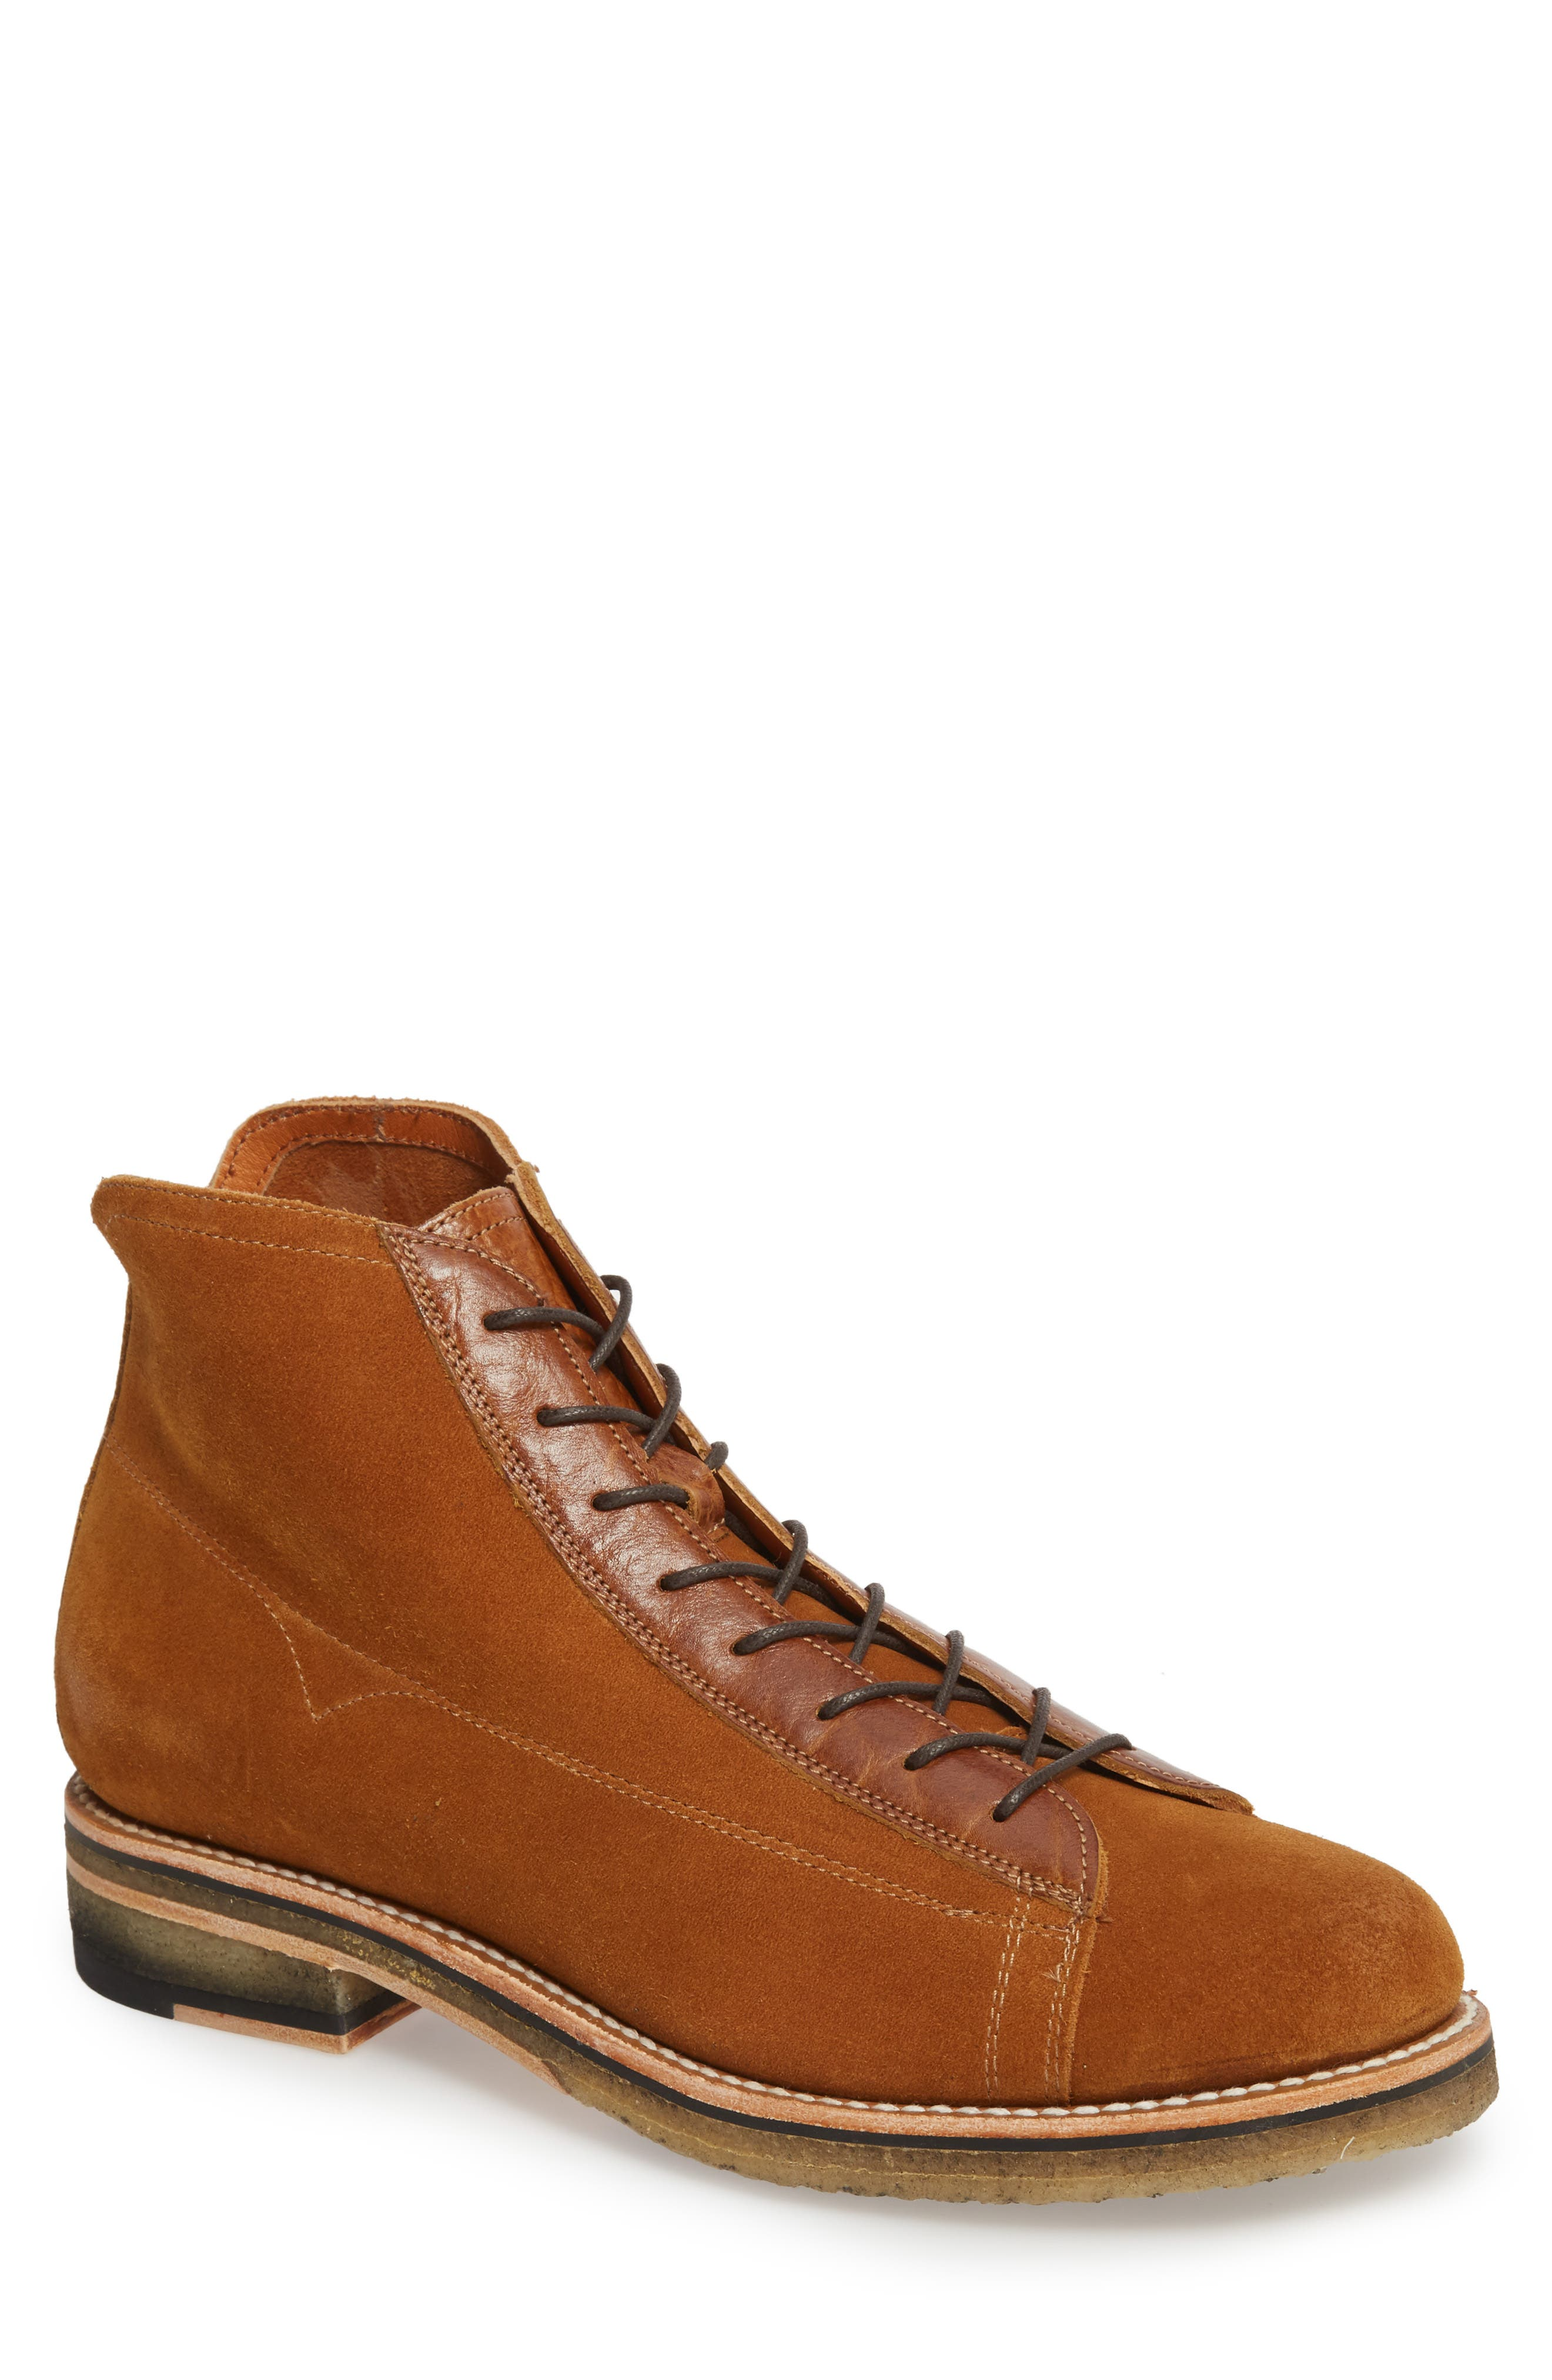 Two24 by Ariat Webster Boot,                             Main thumbnail 1, color,